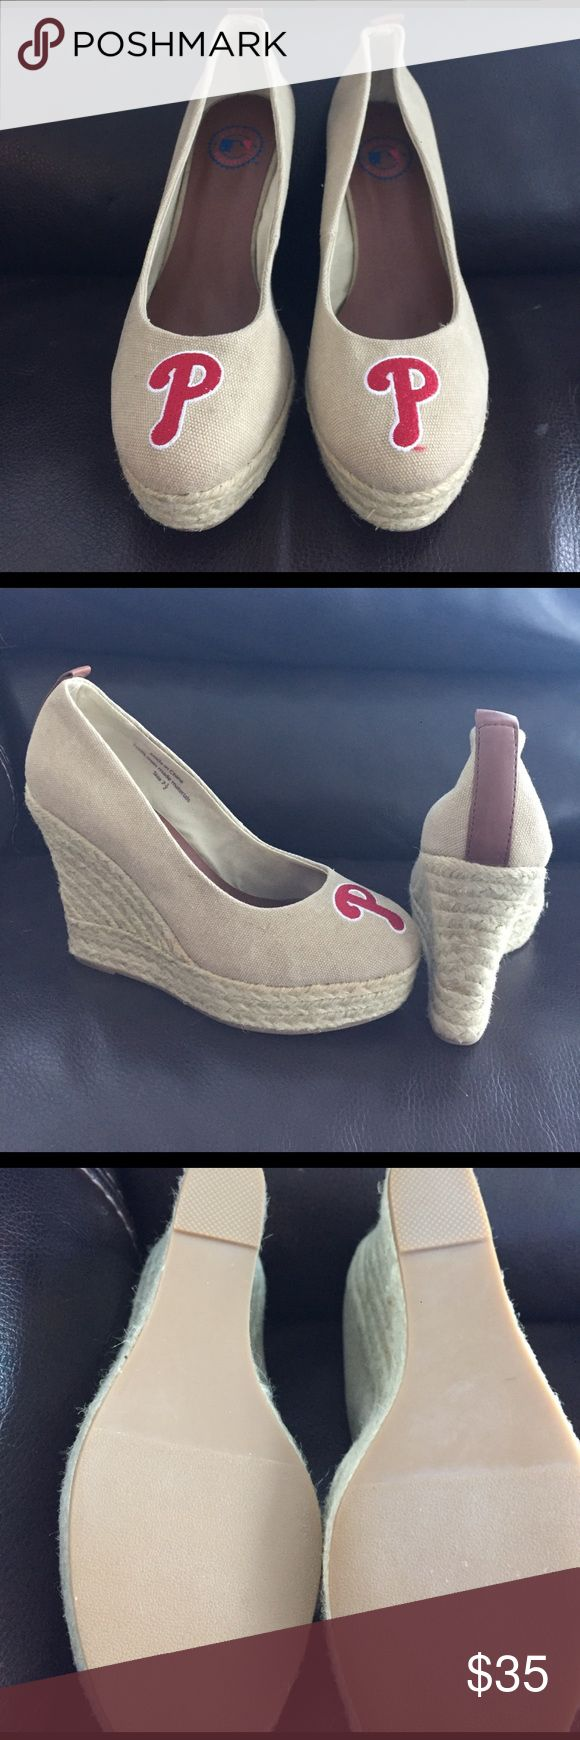 Phillies wedges Phillies Phans!! Here's a cute pair of espadrilles for your stylish summer baseball games. Never worn, brand new tags removed. No signs of wear & tear. cuce Shoes Espadrilles